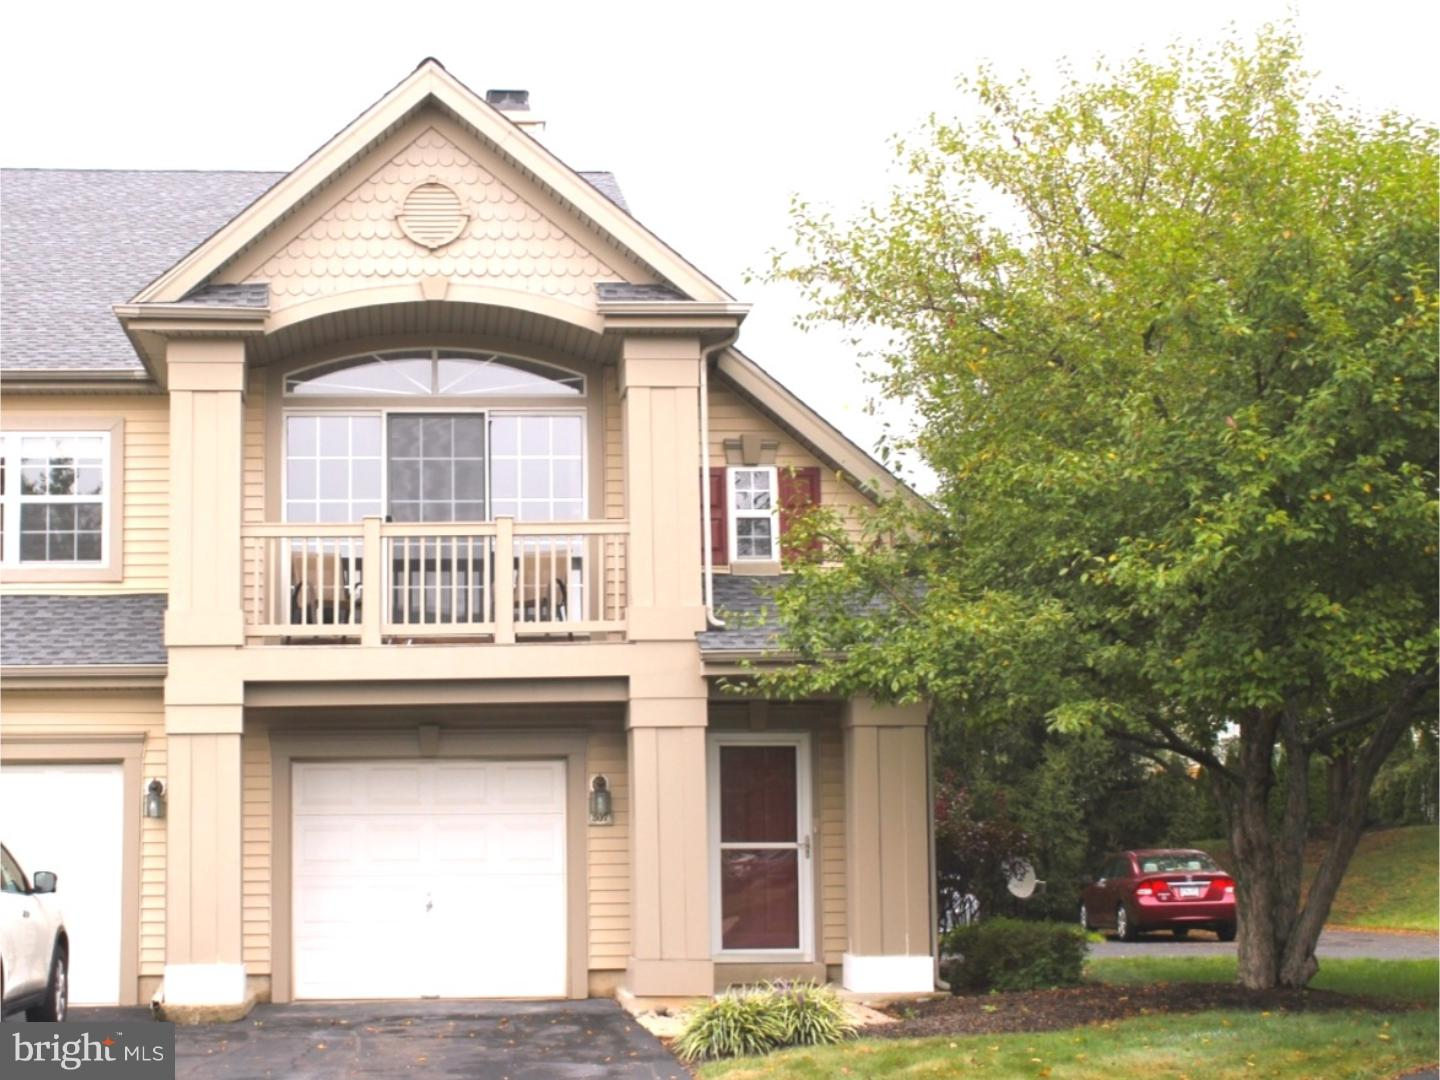 Single Family Home for Rent at 307 ALEXANDER CT #356 Warwick, Pennsylvania 18974 United States